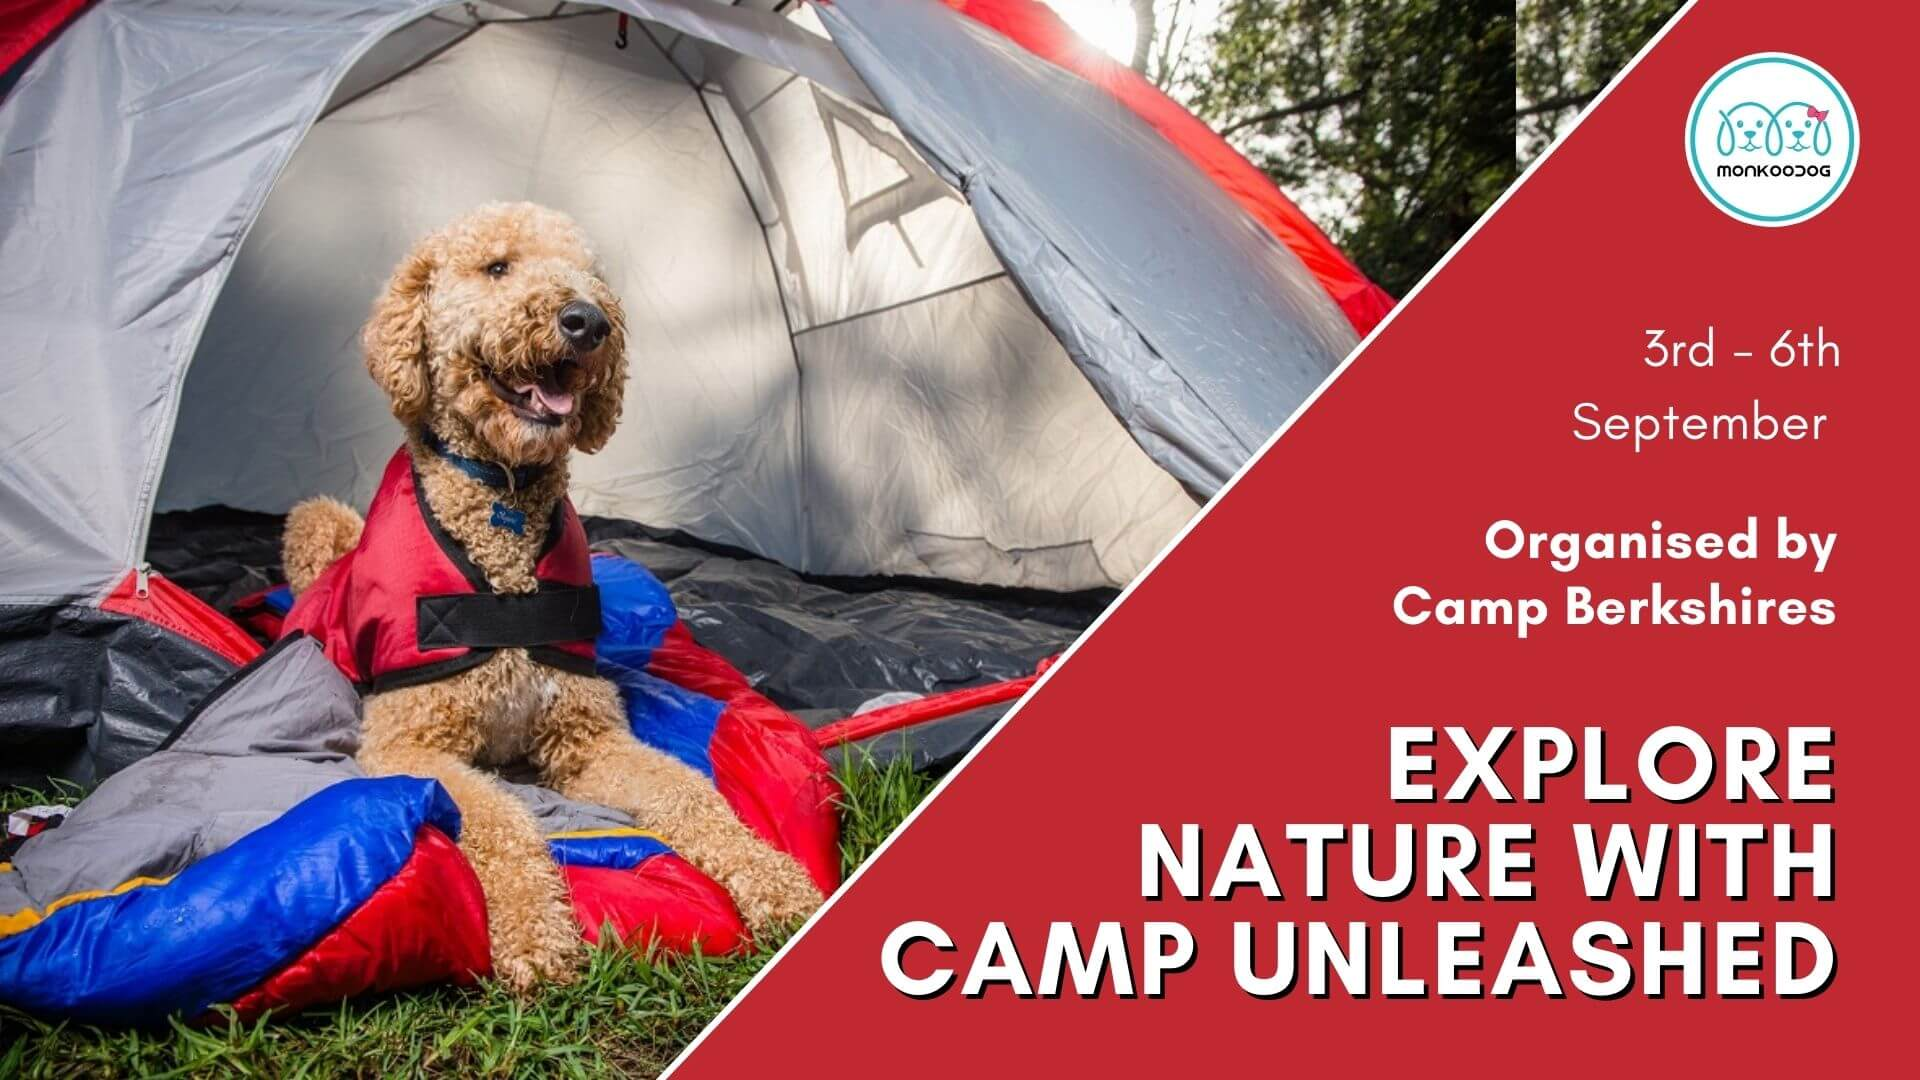 Dog friendly event Explore nature with Camp Unleashed!!